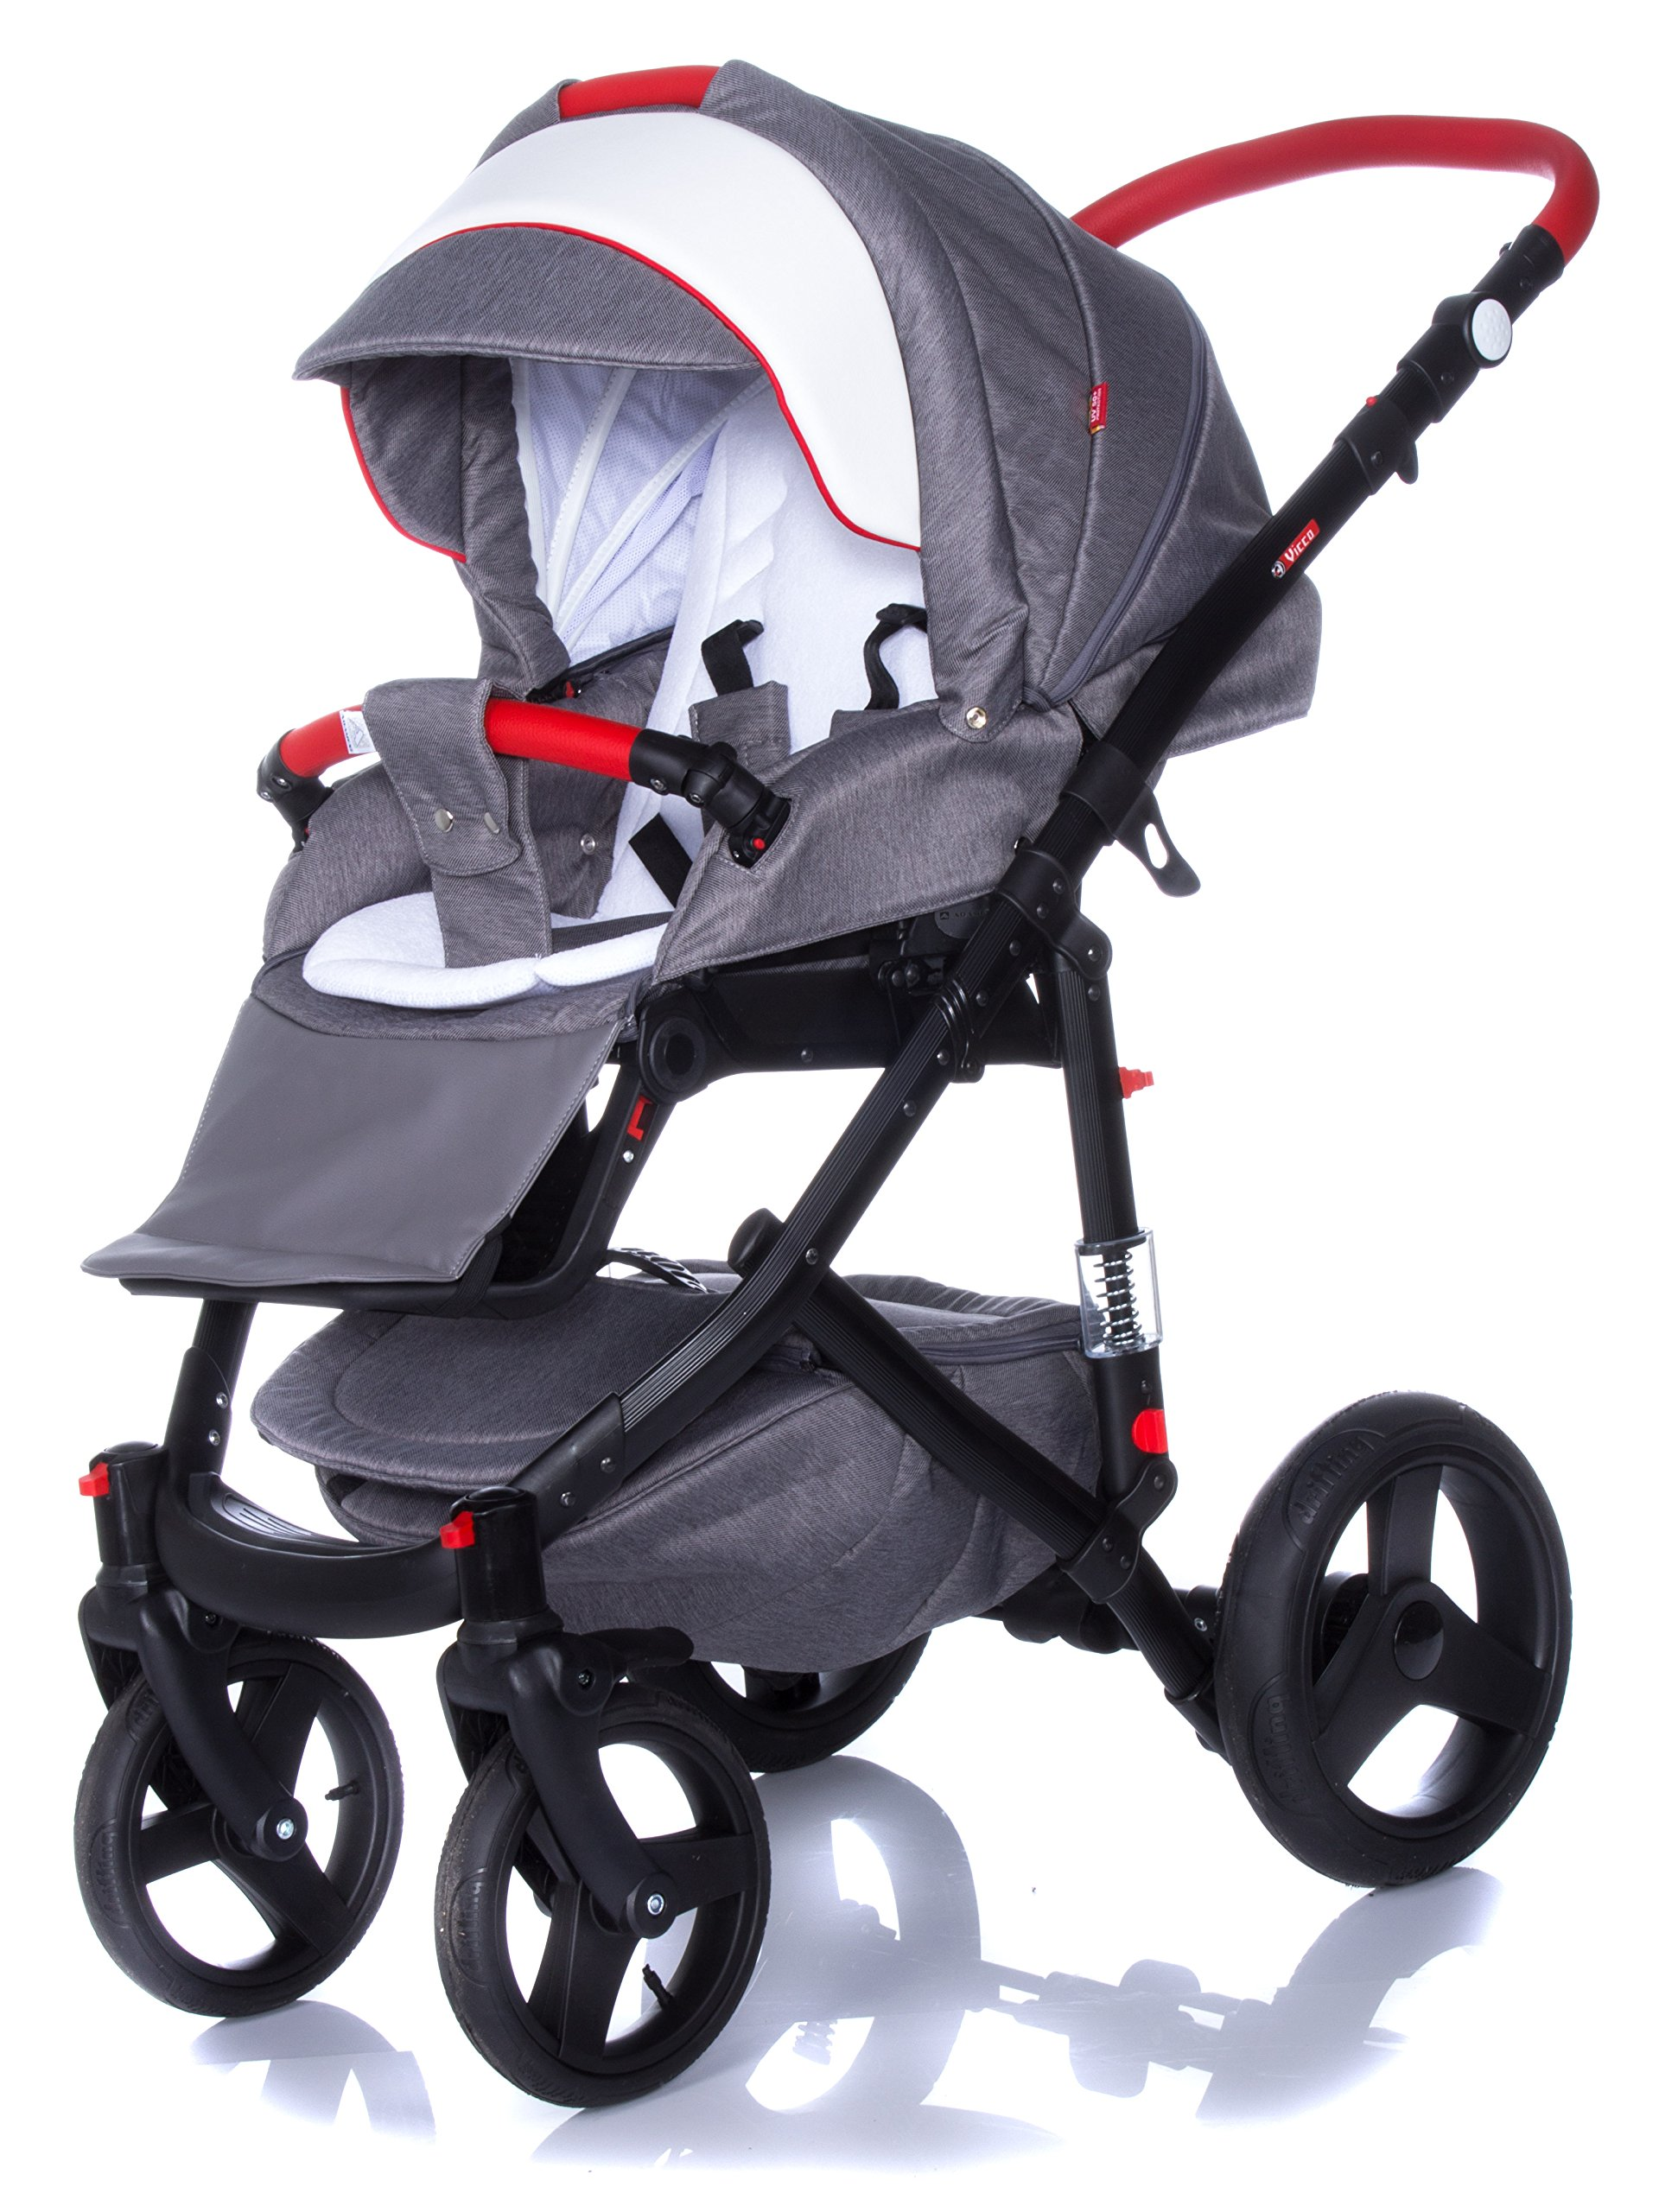 Baby Pram Pushchair Stroller Buggy Travel System Set Adamex Vicco + Baby Bag + Rain Cover + Mosquito Net + (2in1, R2 Red Graphite) Adamex Lockable swivel wheels and lockable side suspension system Light alluminium chassis with gel wheels 50% Ecco Leather and 50% Polyester shell 6